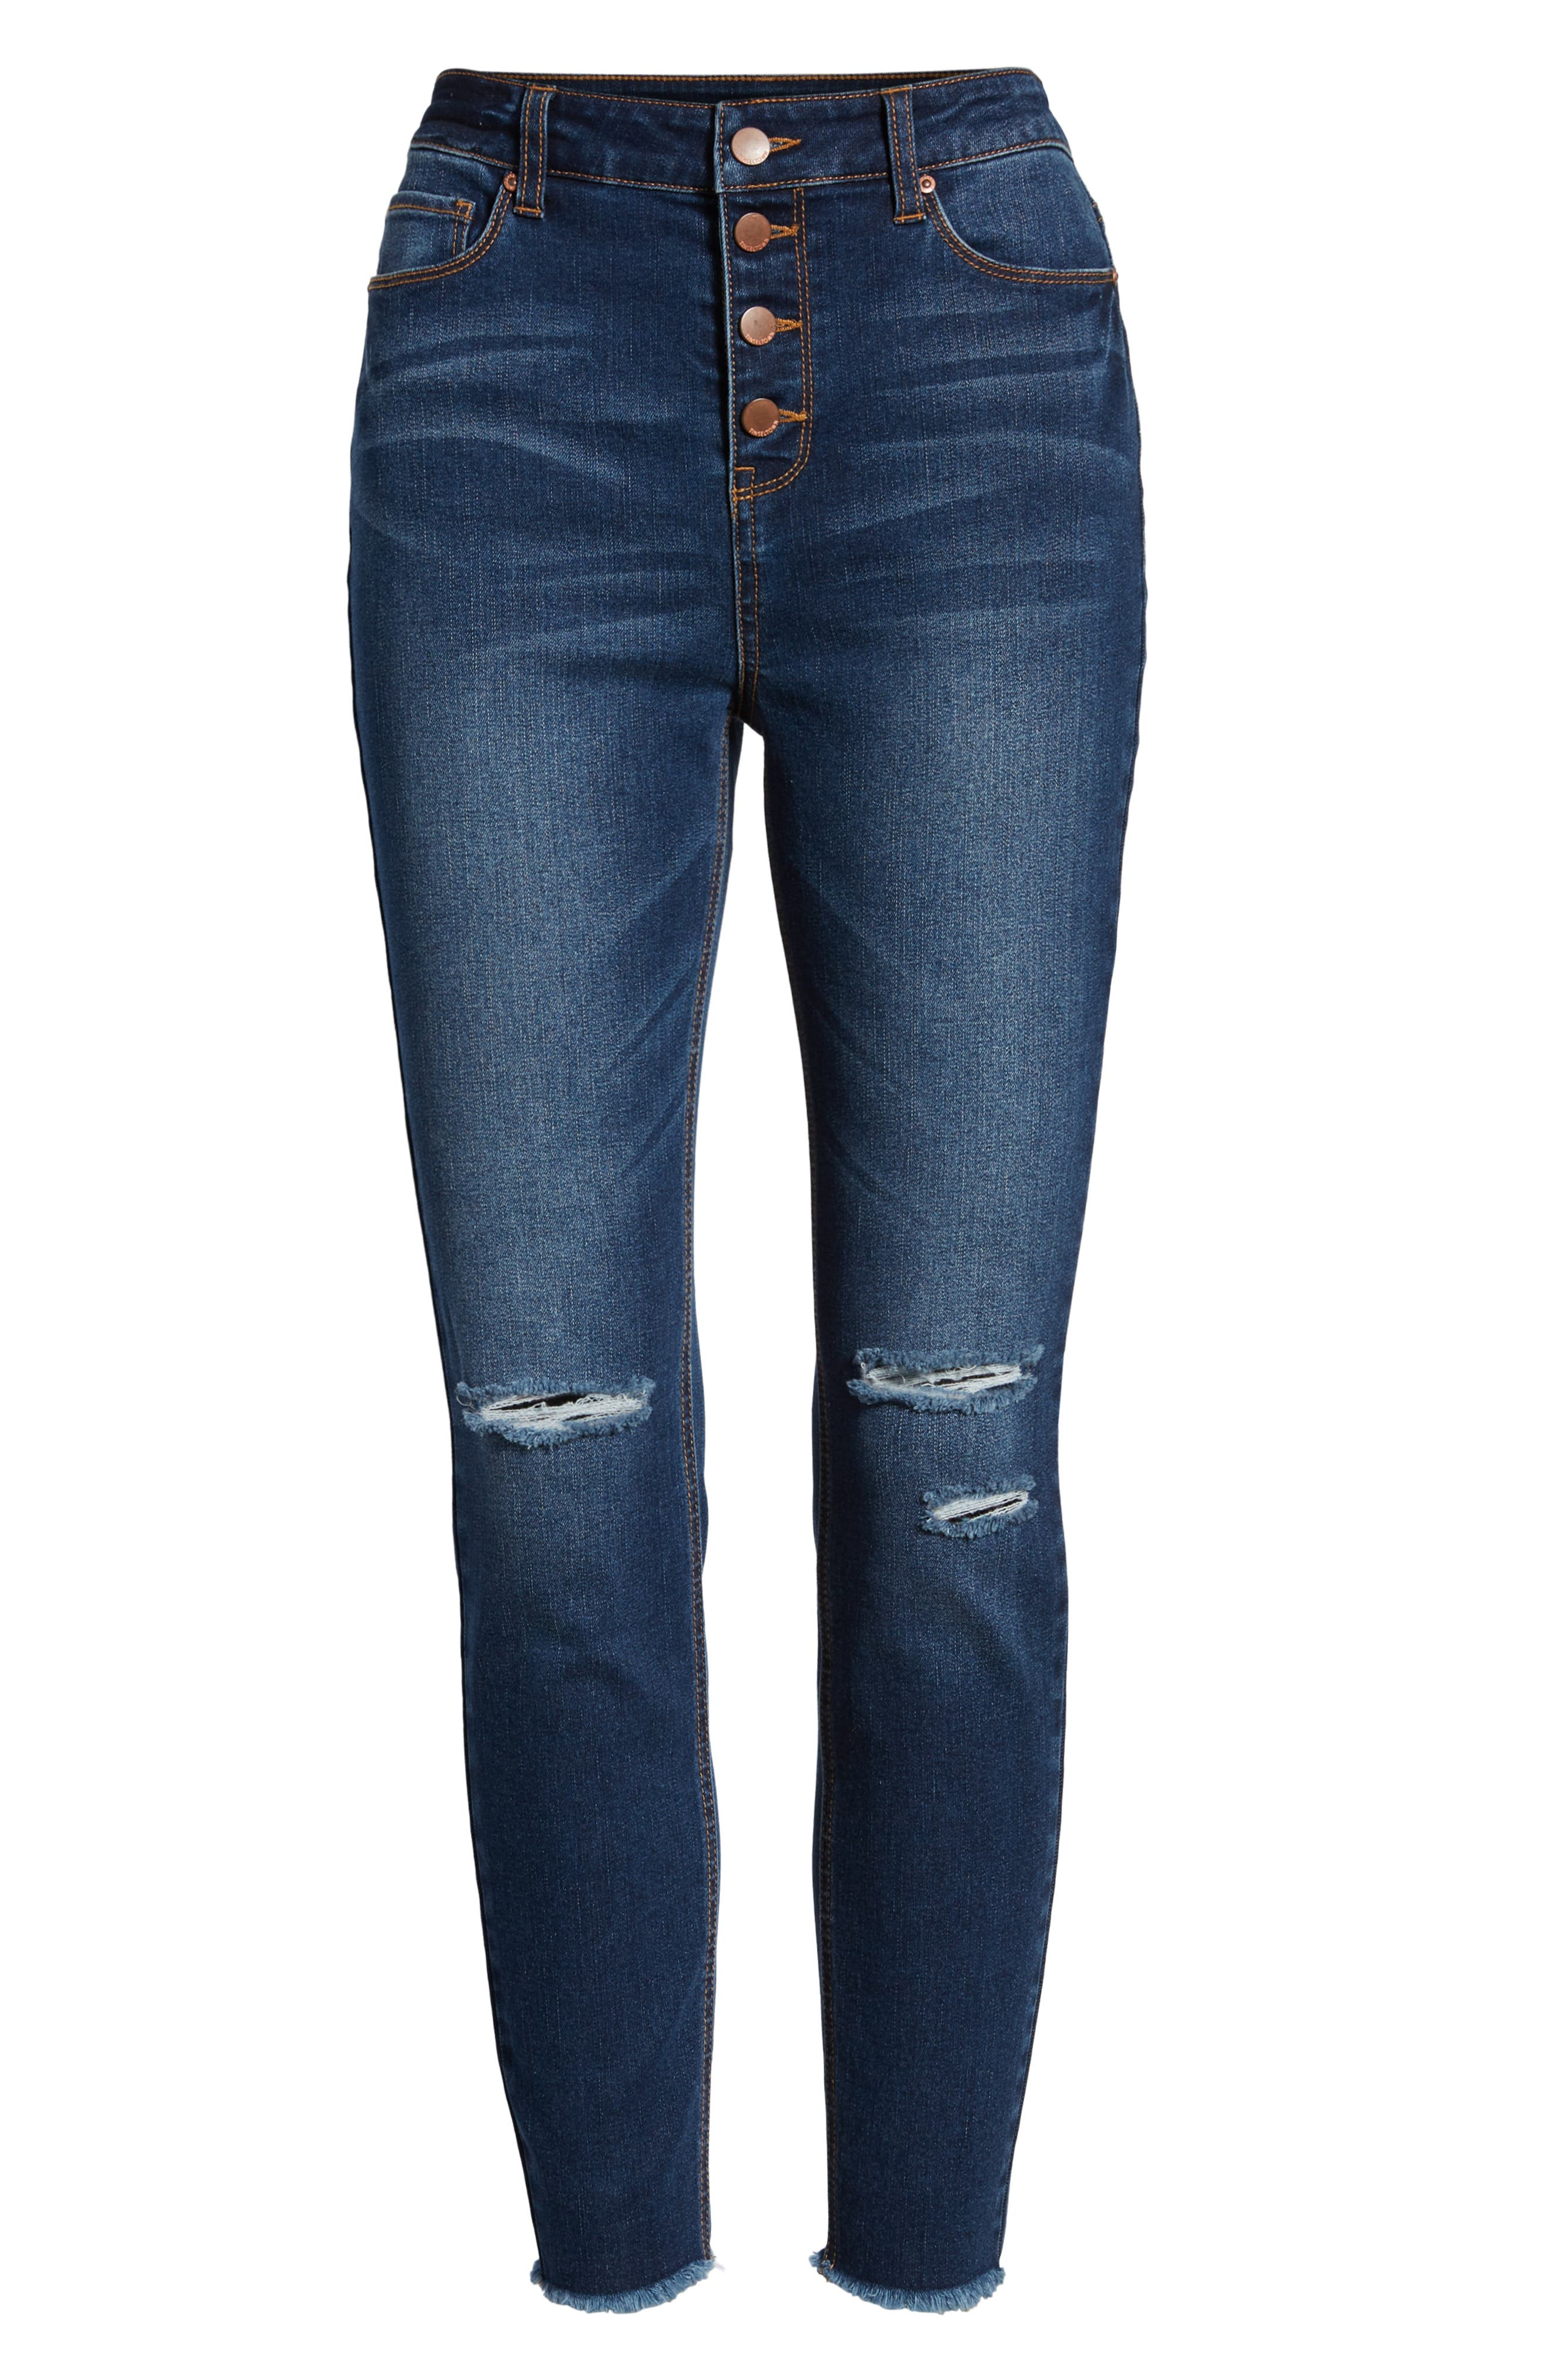 Ripped High Waist Ankle Skinny Jeans,                             Alternate thumbnail 7, color,                             DARK WASH